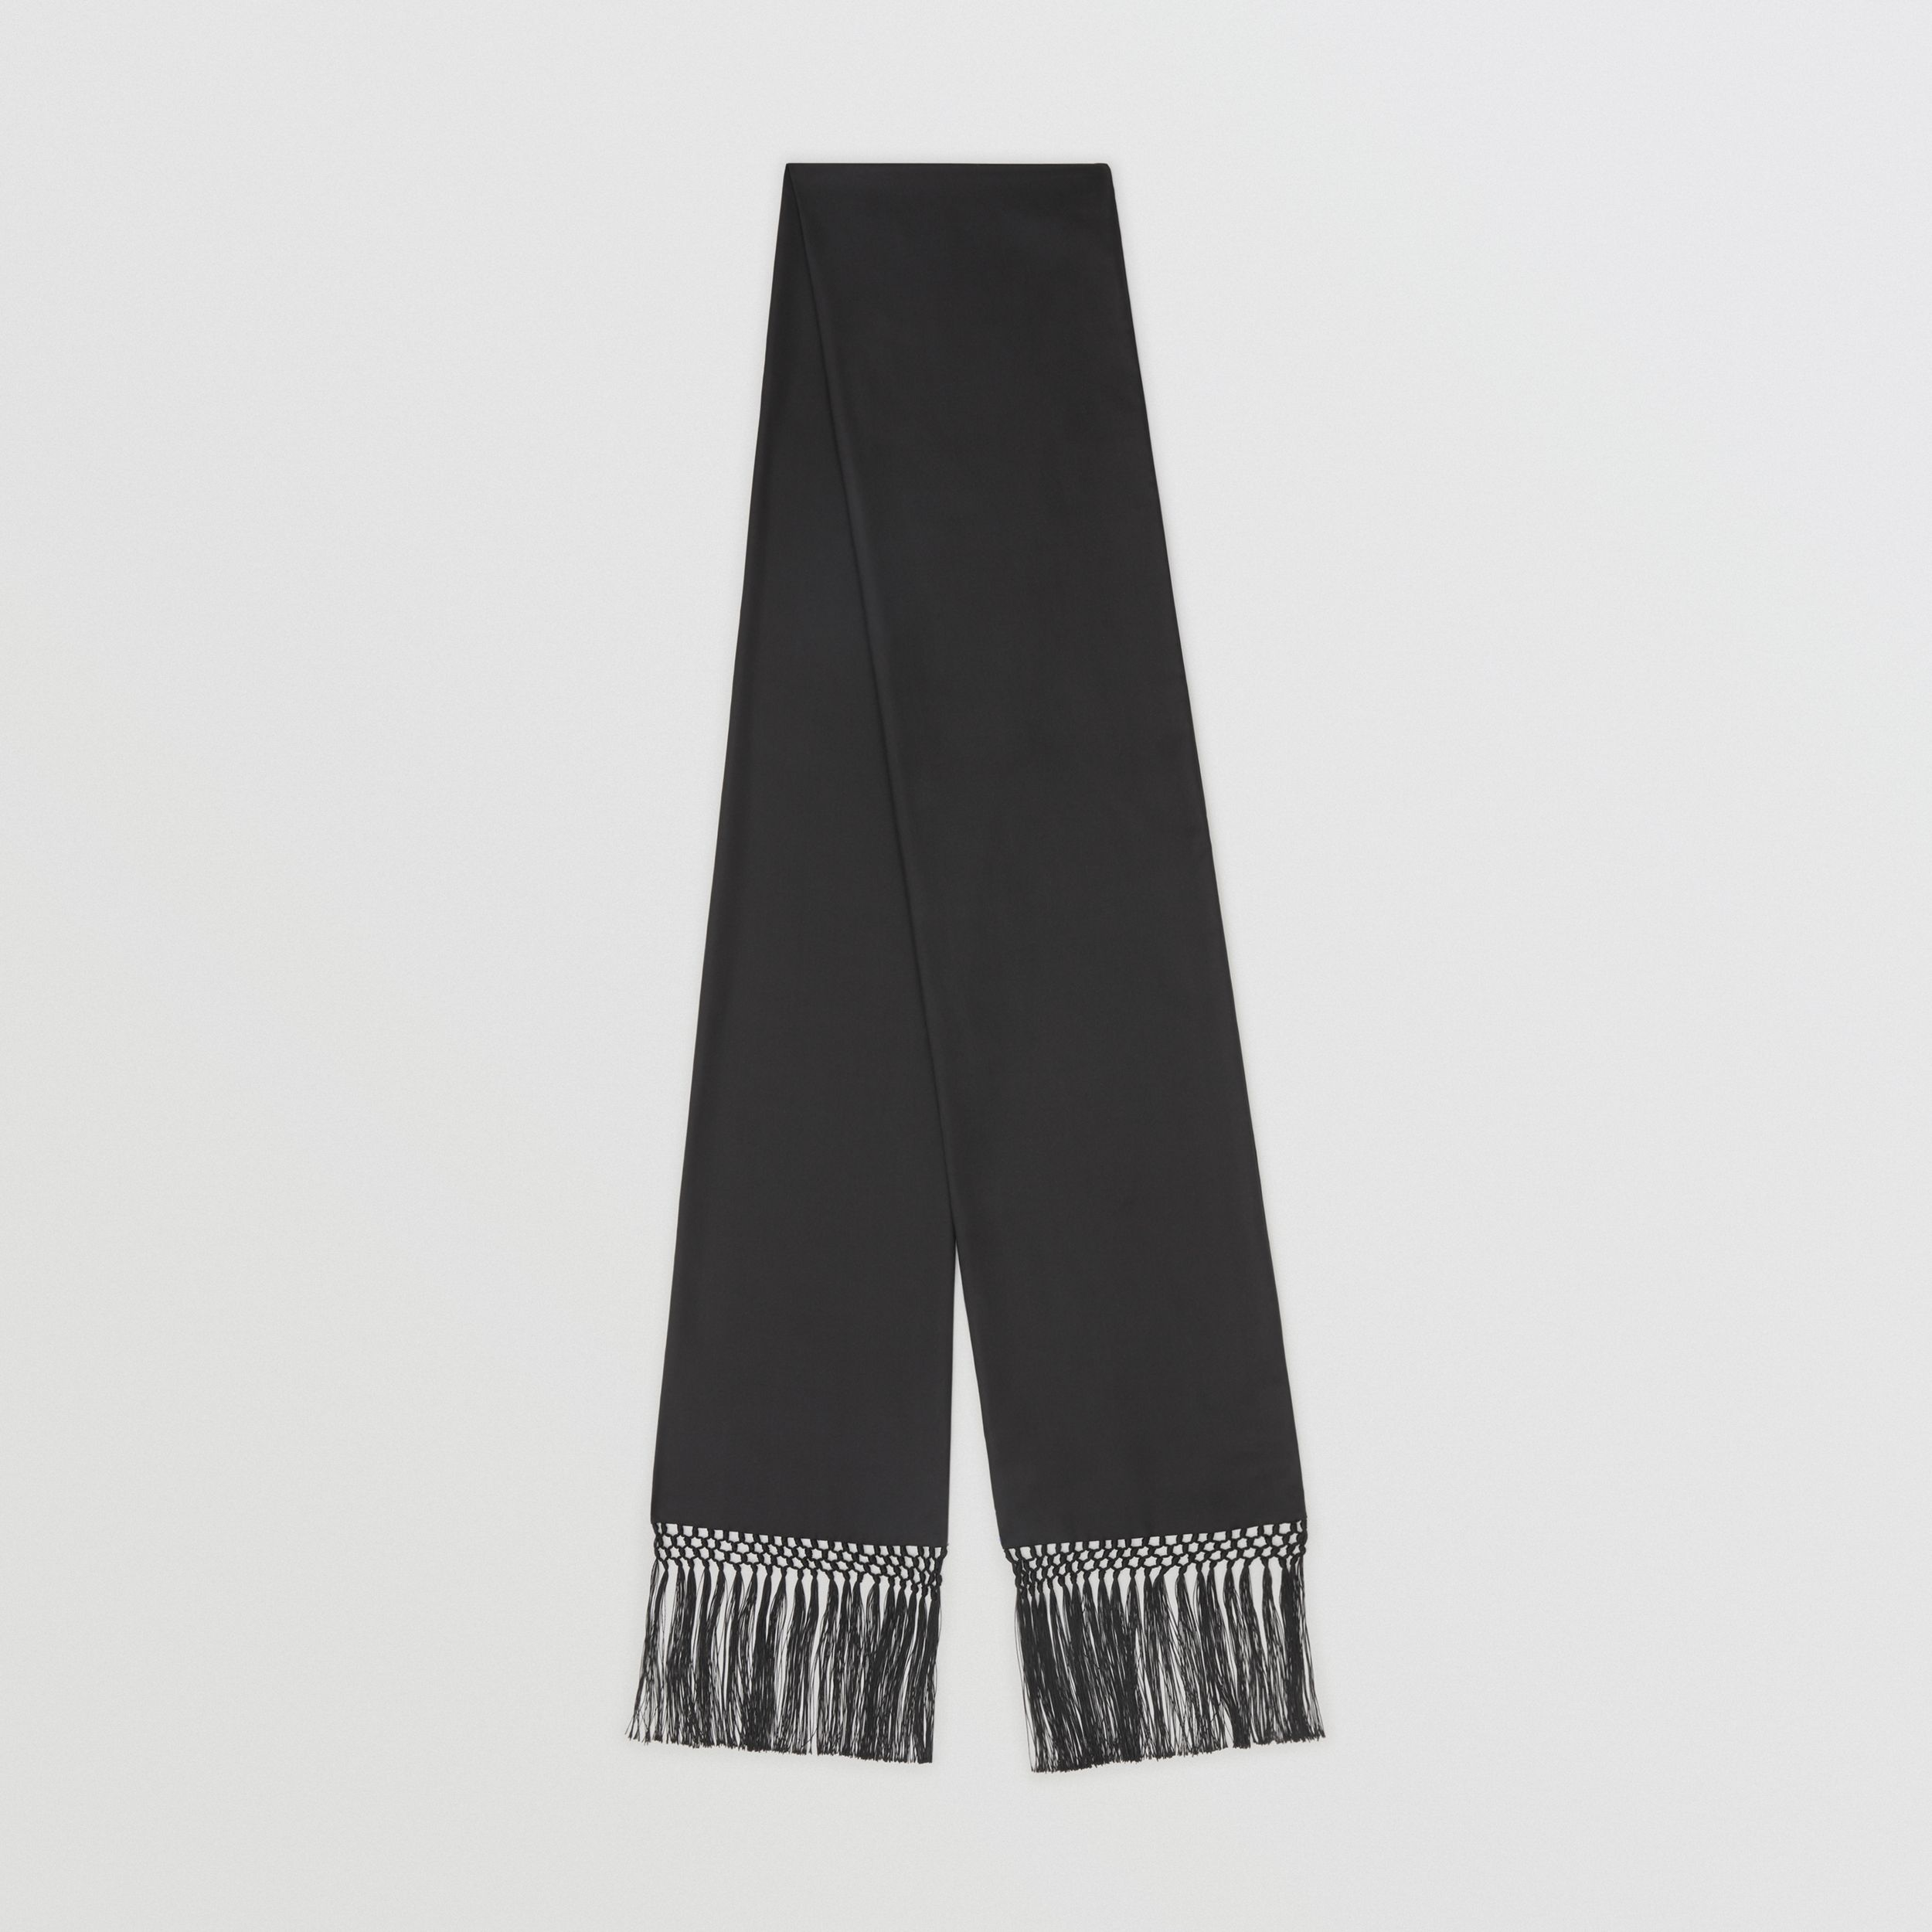 Fringed Silk Skinny Scarf in Black | Burberry - 1